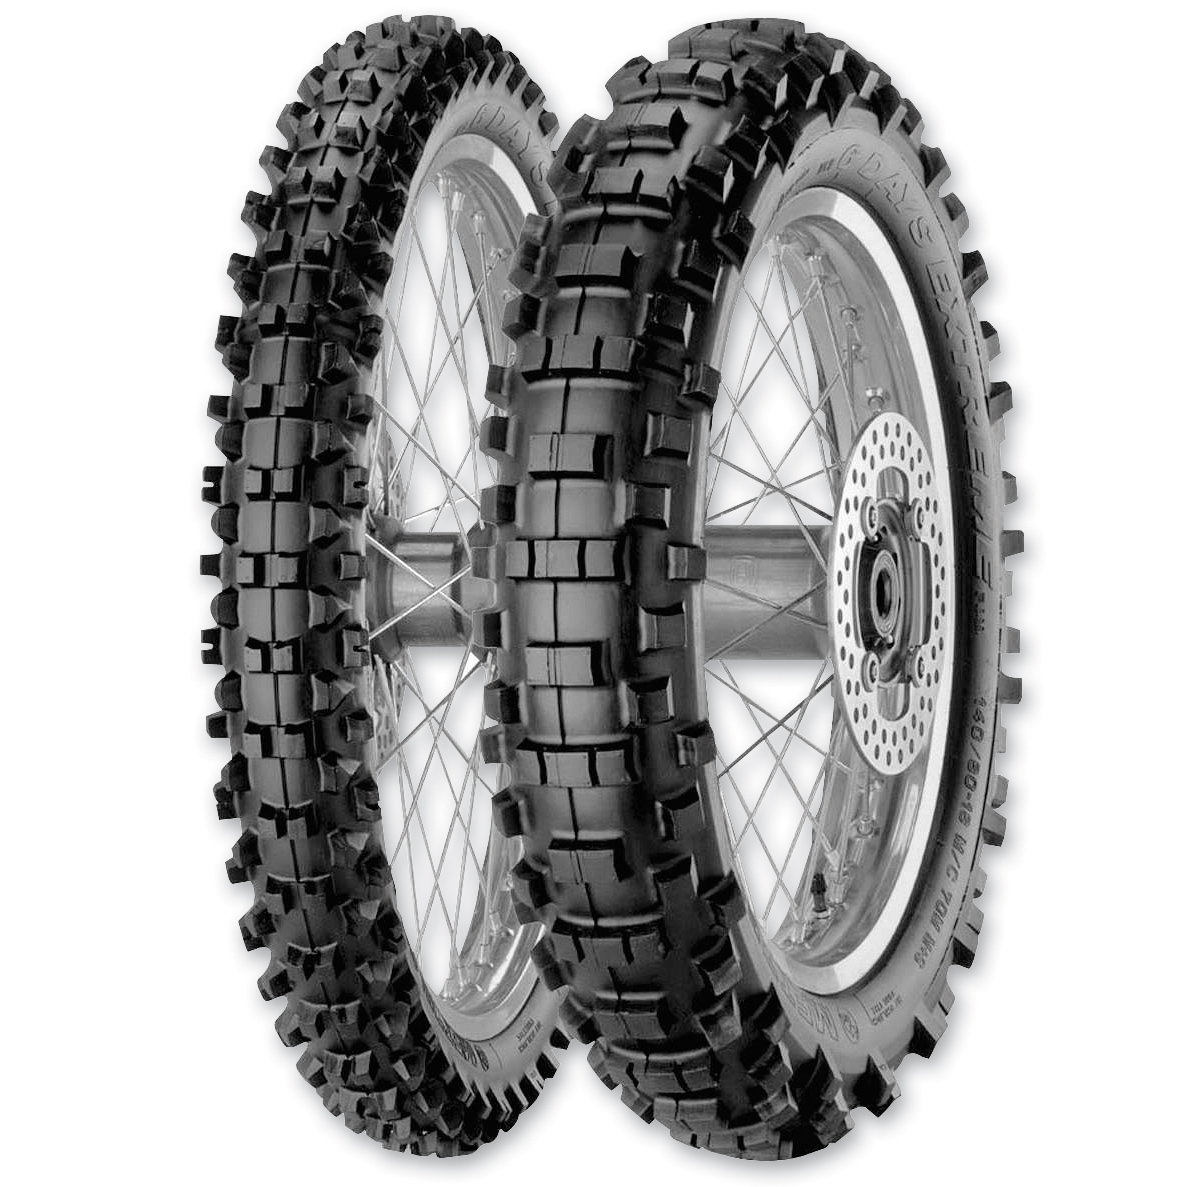 Metzeler 6 Days Extreme 90/100-21 Front Tire